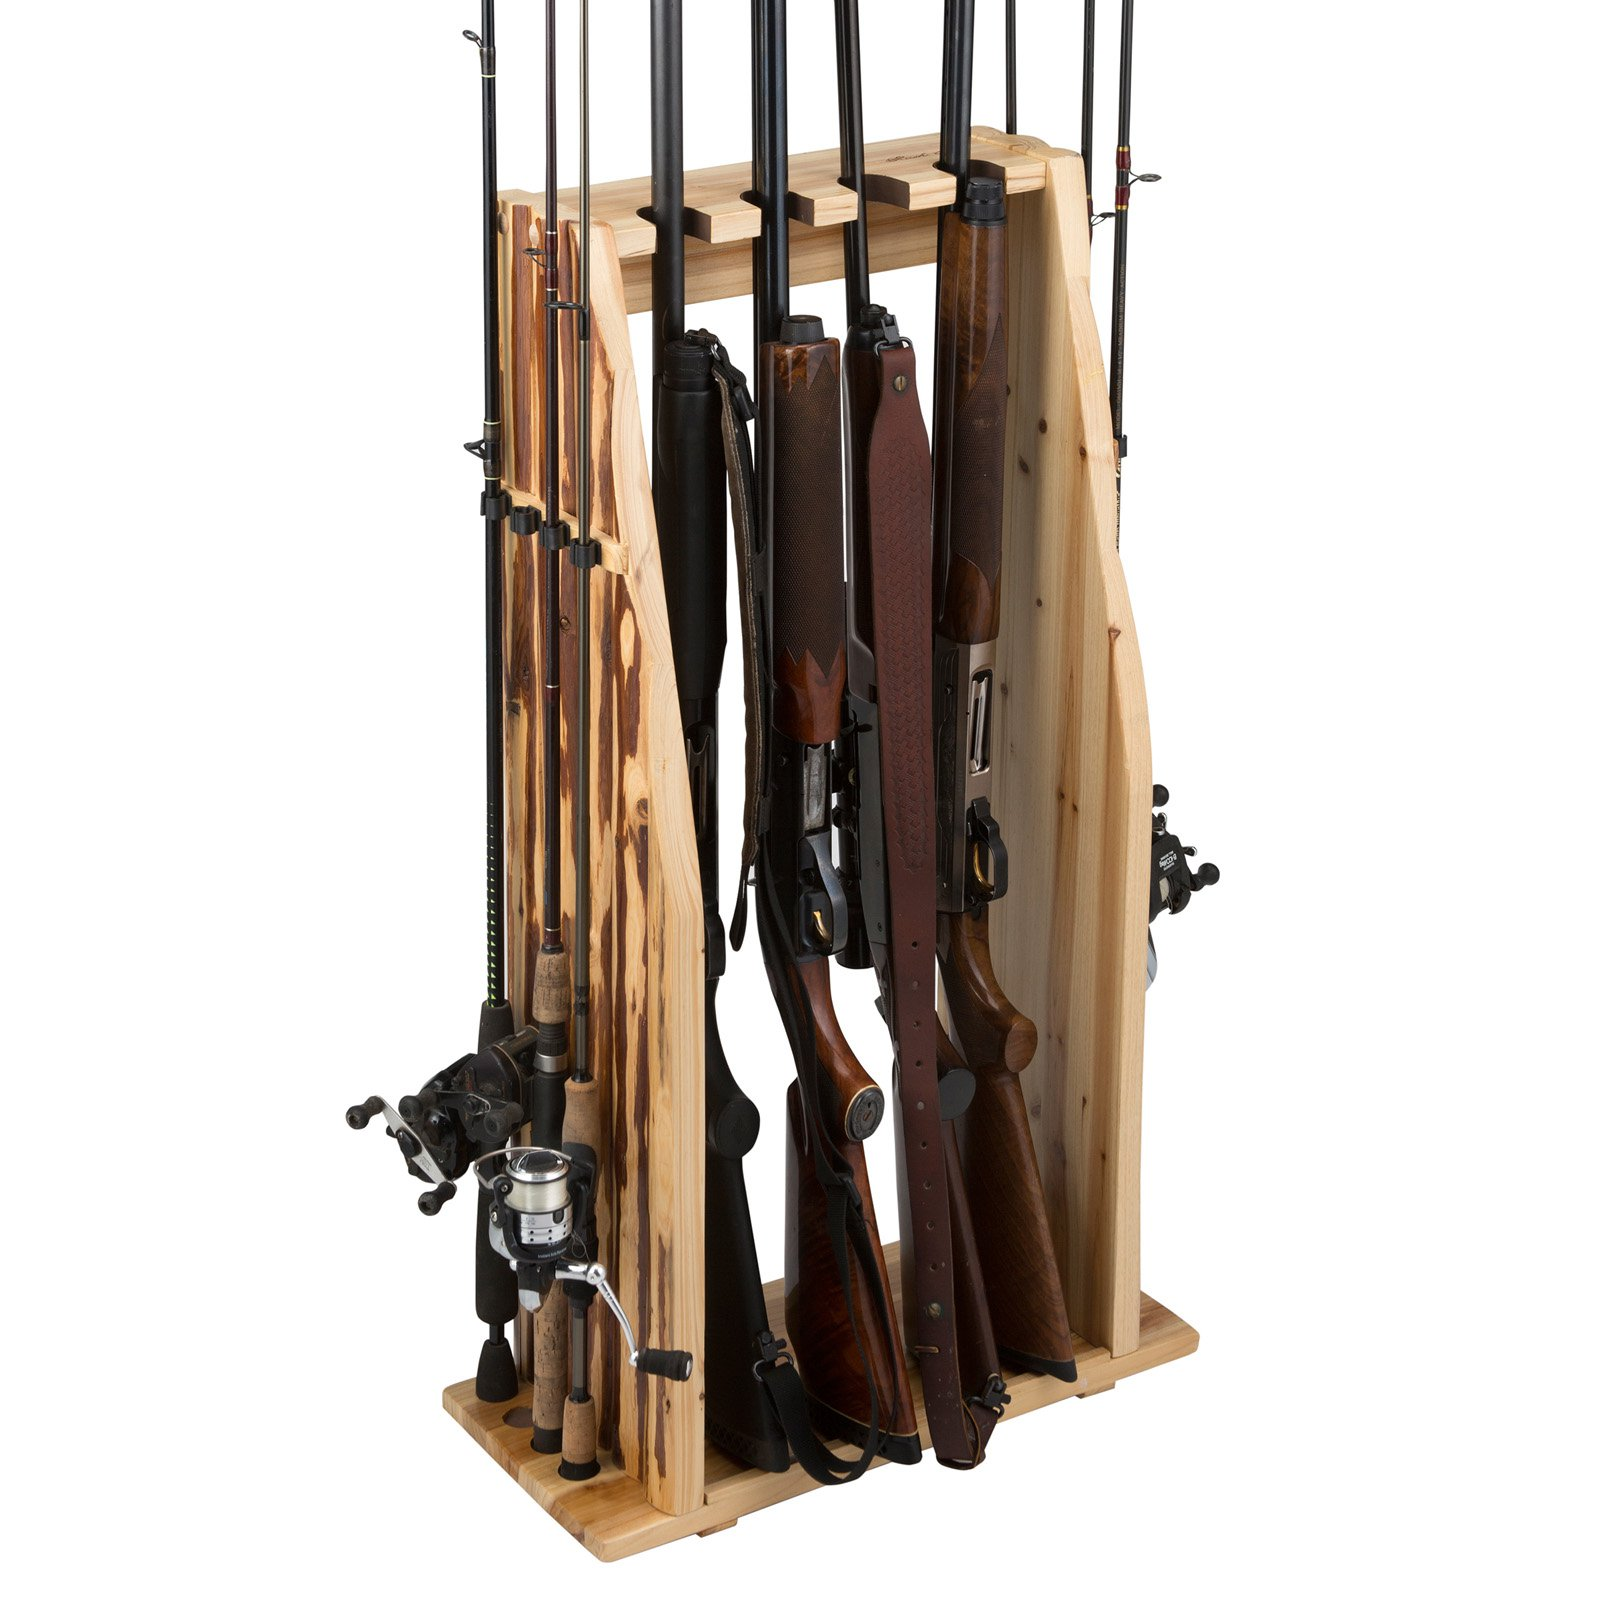 Rush Creek Creations 4 Gun 8 Fishing Rod Storage Rack